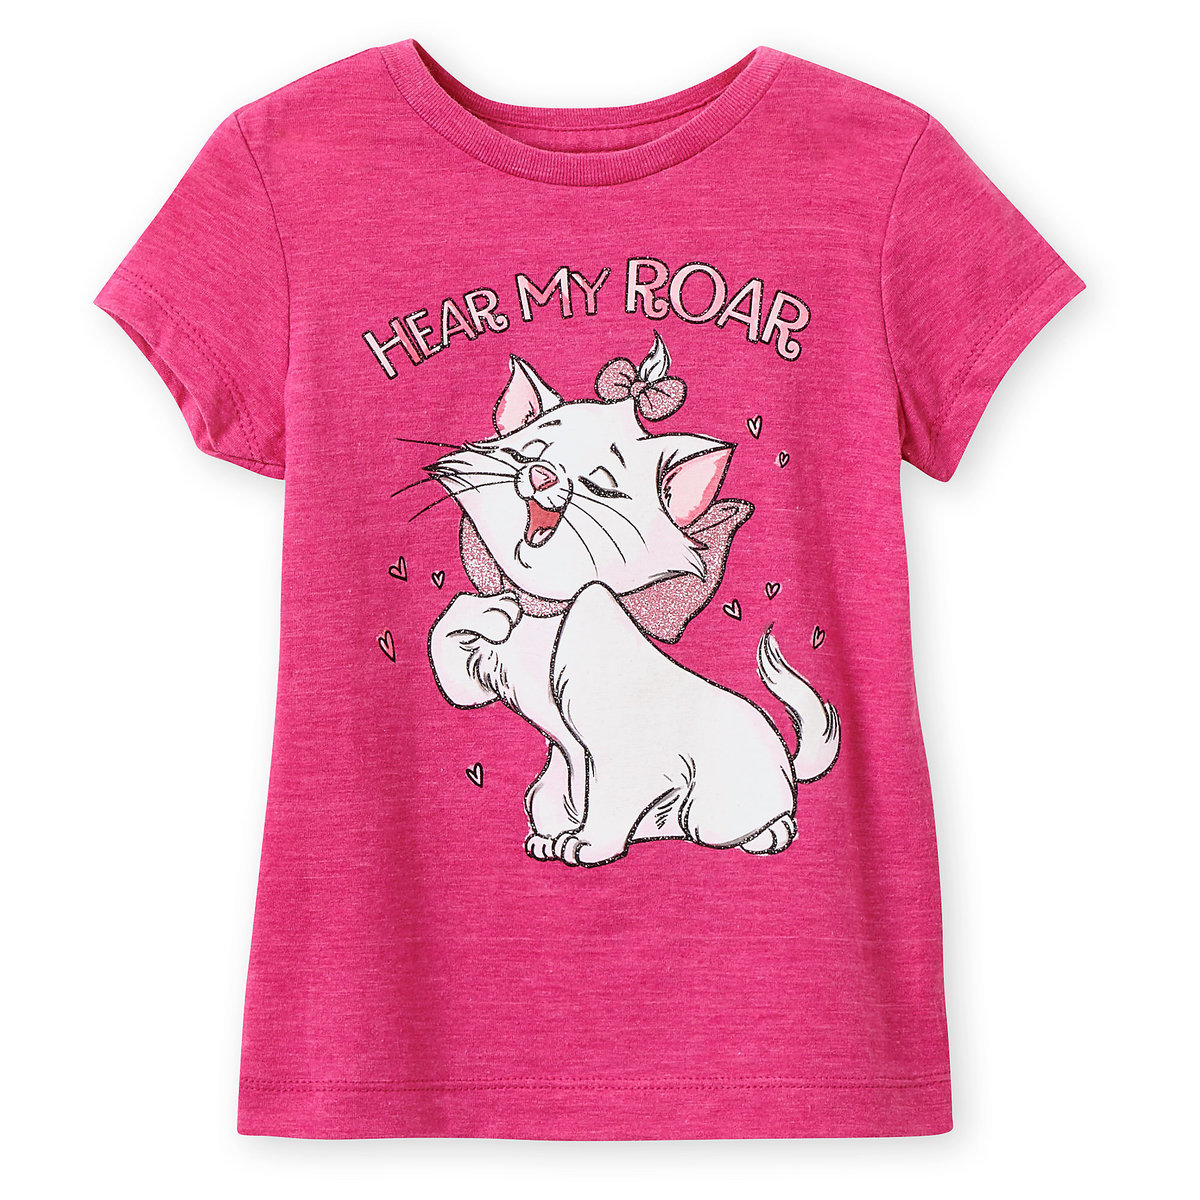 60f9ec1dc4 Marie T-Shirt for Girls - The Aristocats